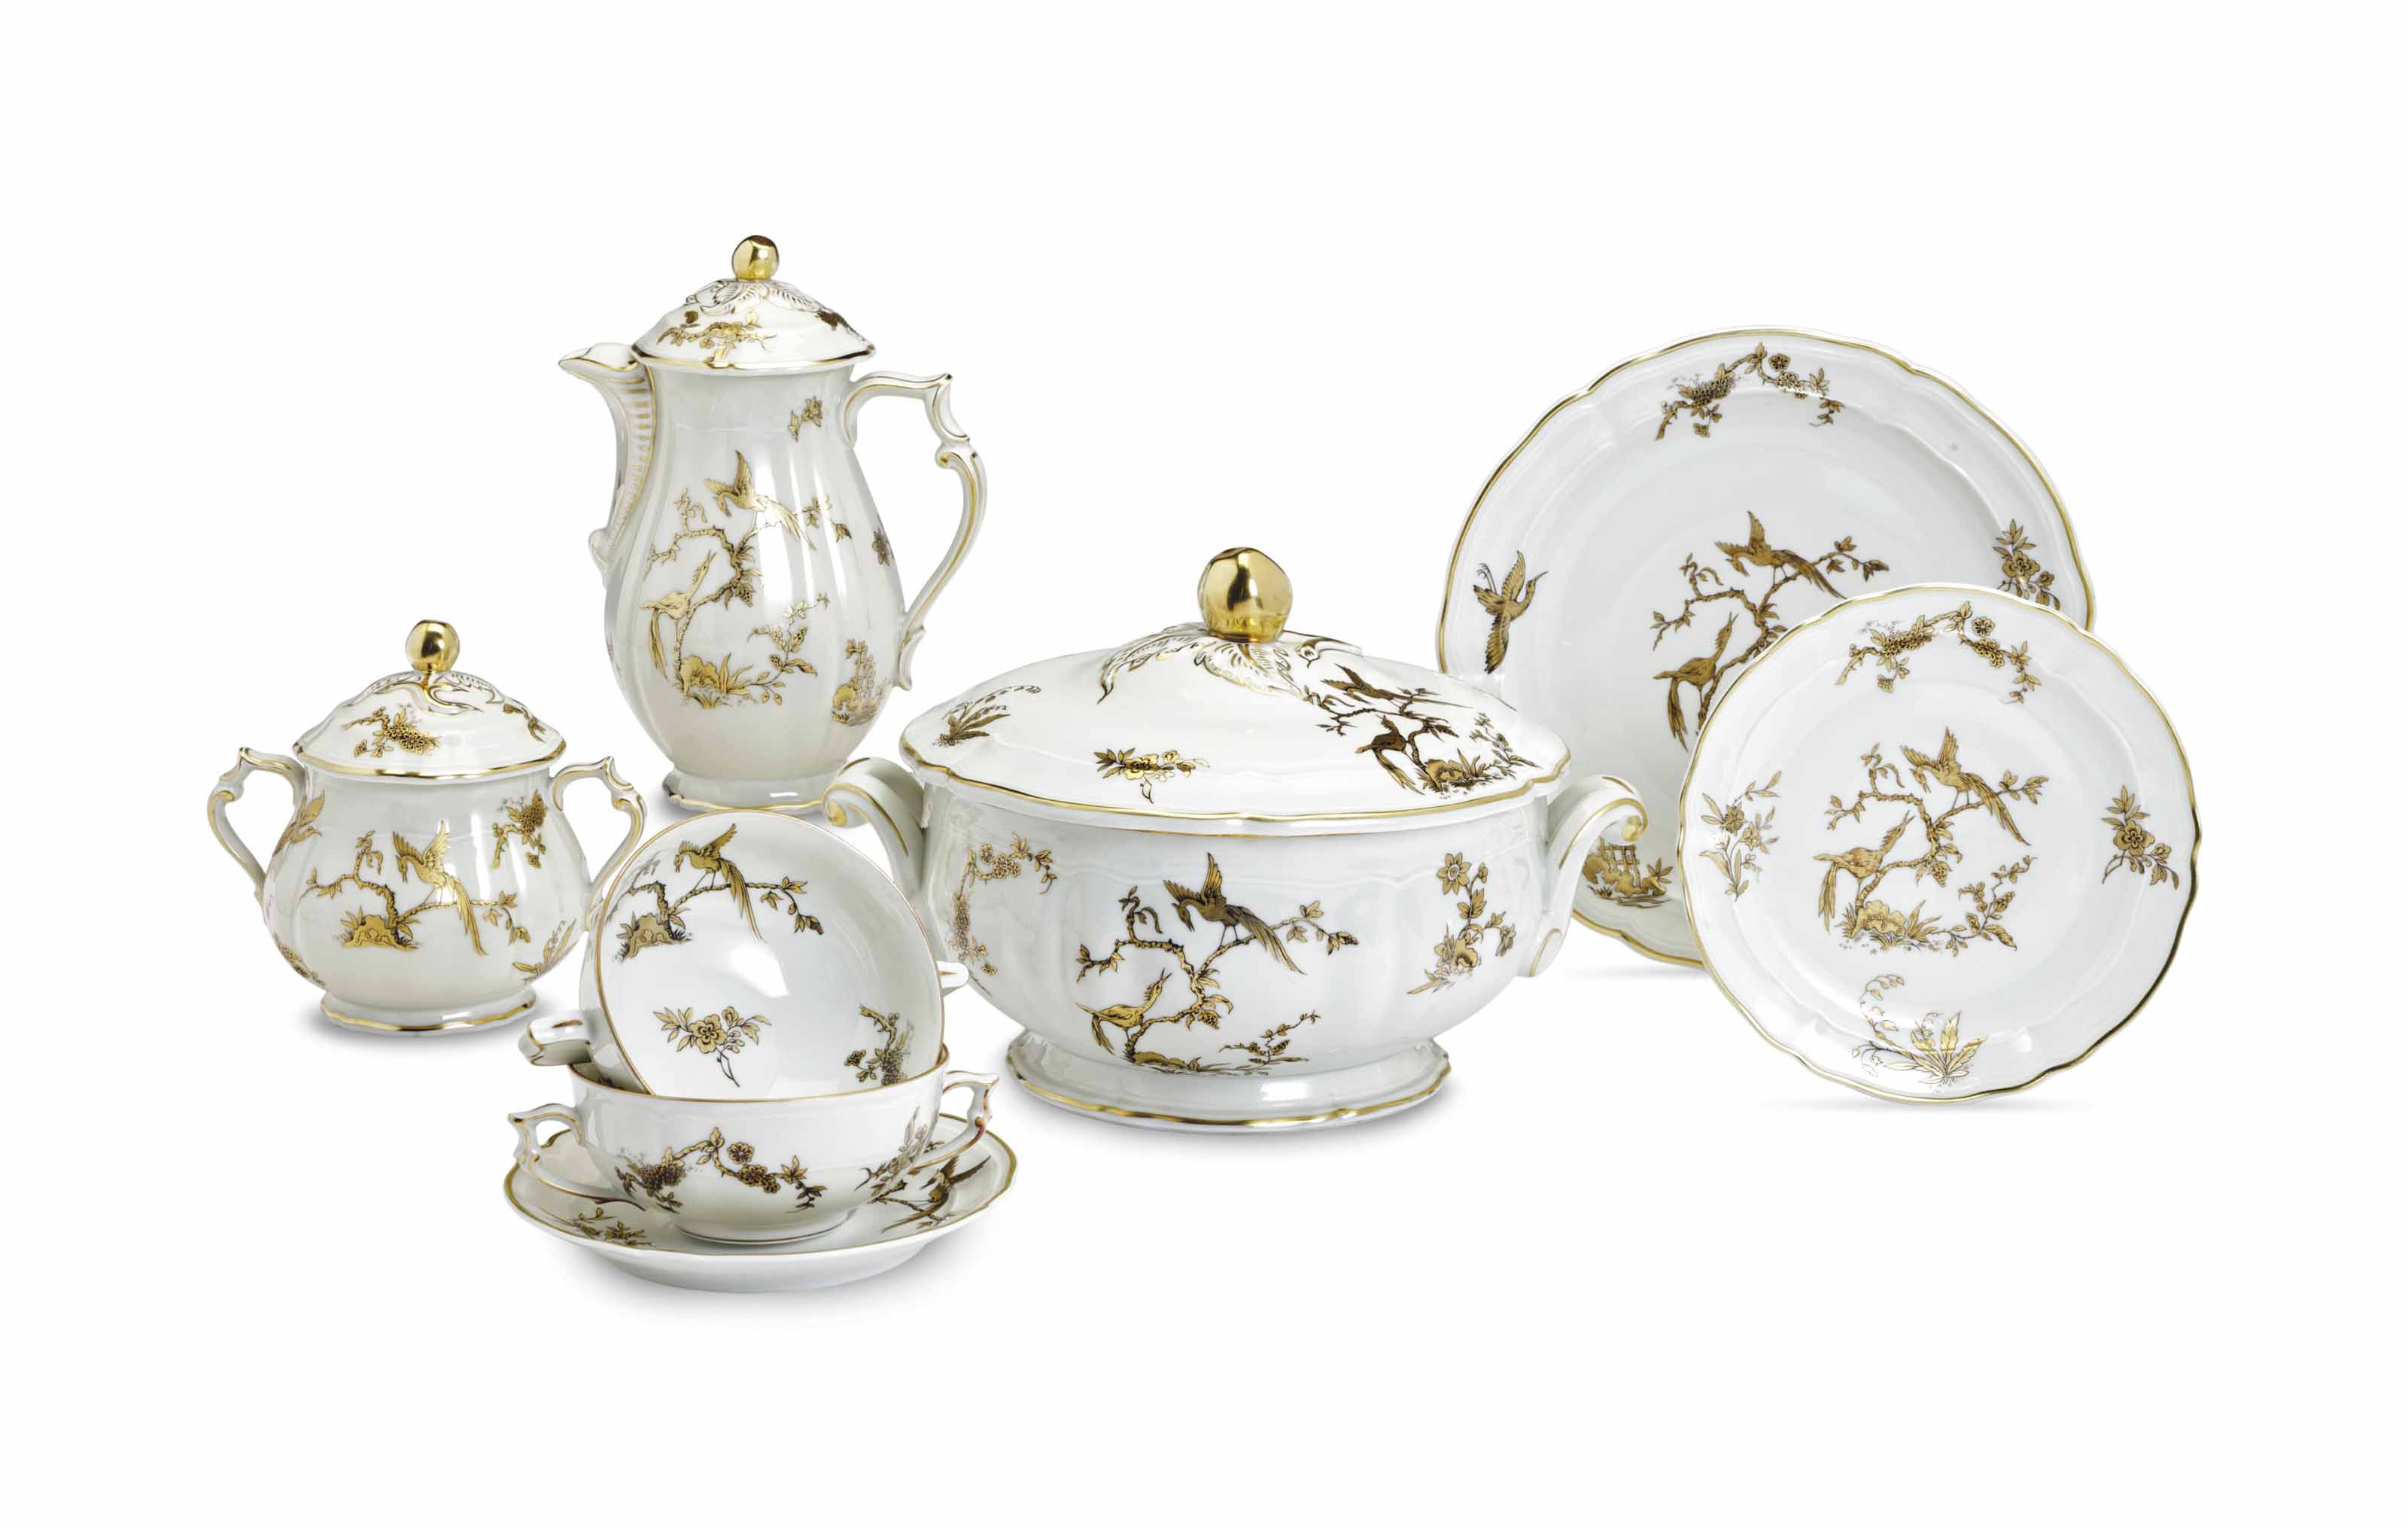 AN ASSEMBLED FRENCH PORCELAIN COMMEMORATIVE PART DINNER AND DESSERT SERVICE,